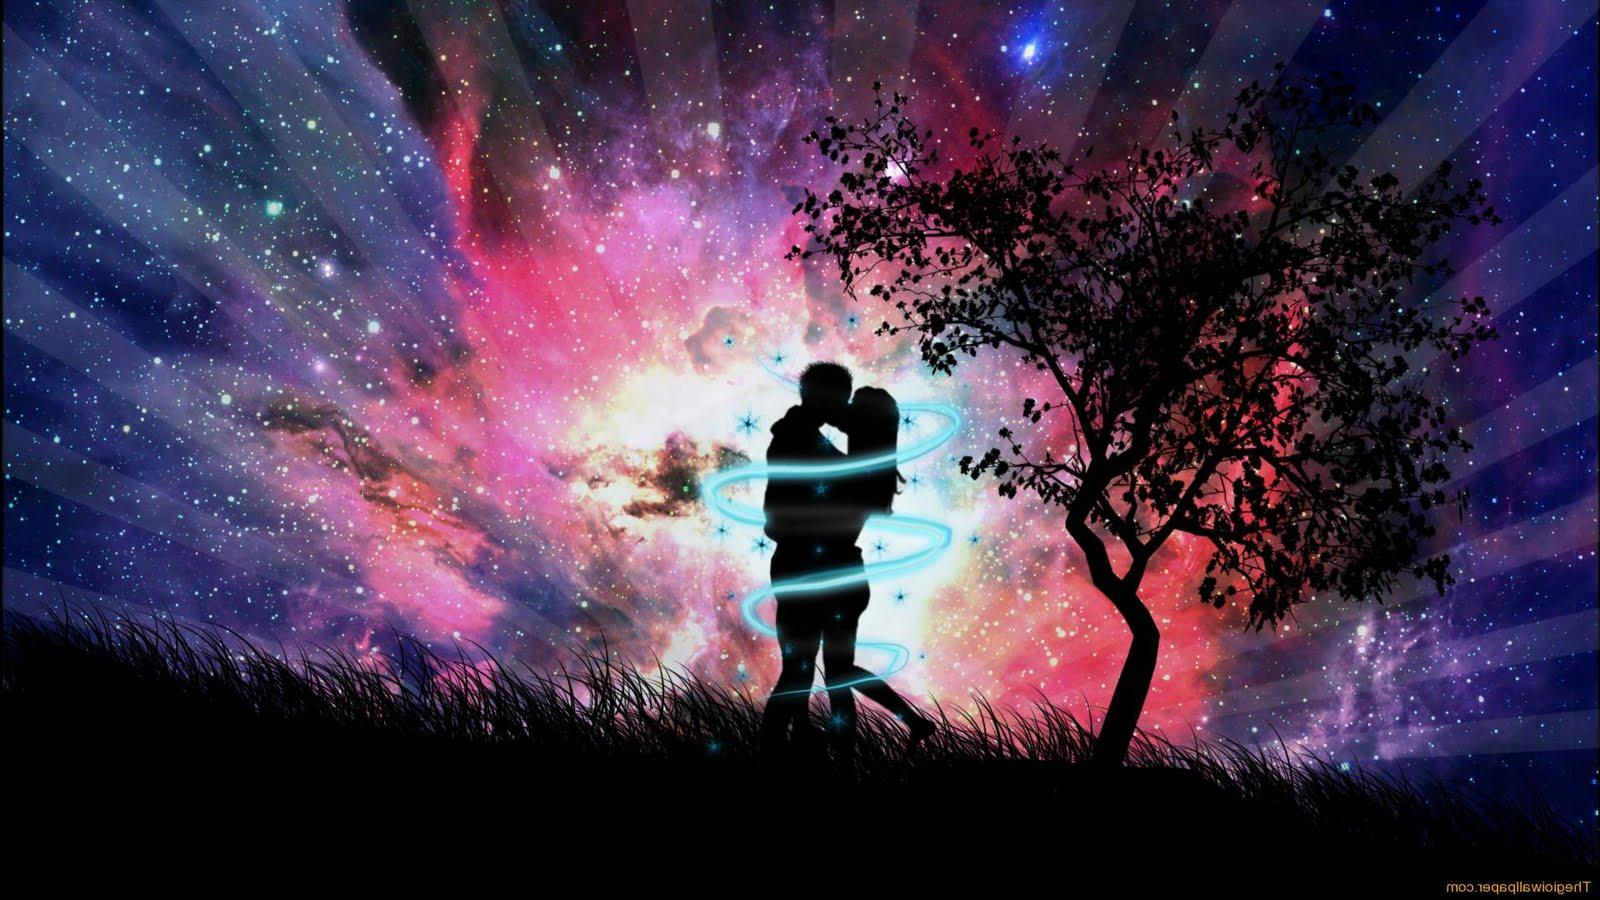 Love Kissing Wallpapers - WallpaperSafari